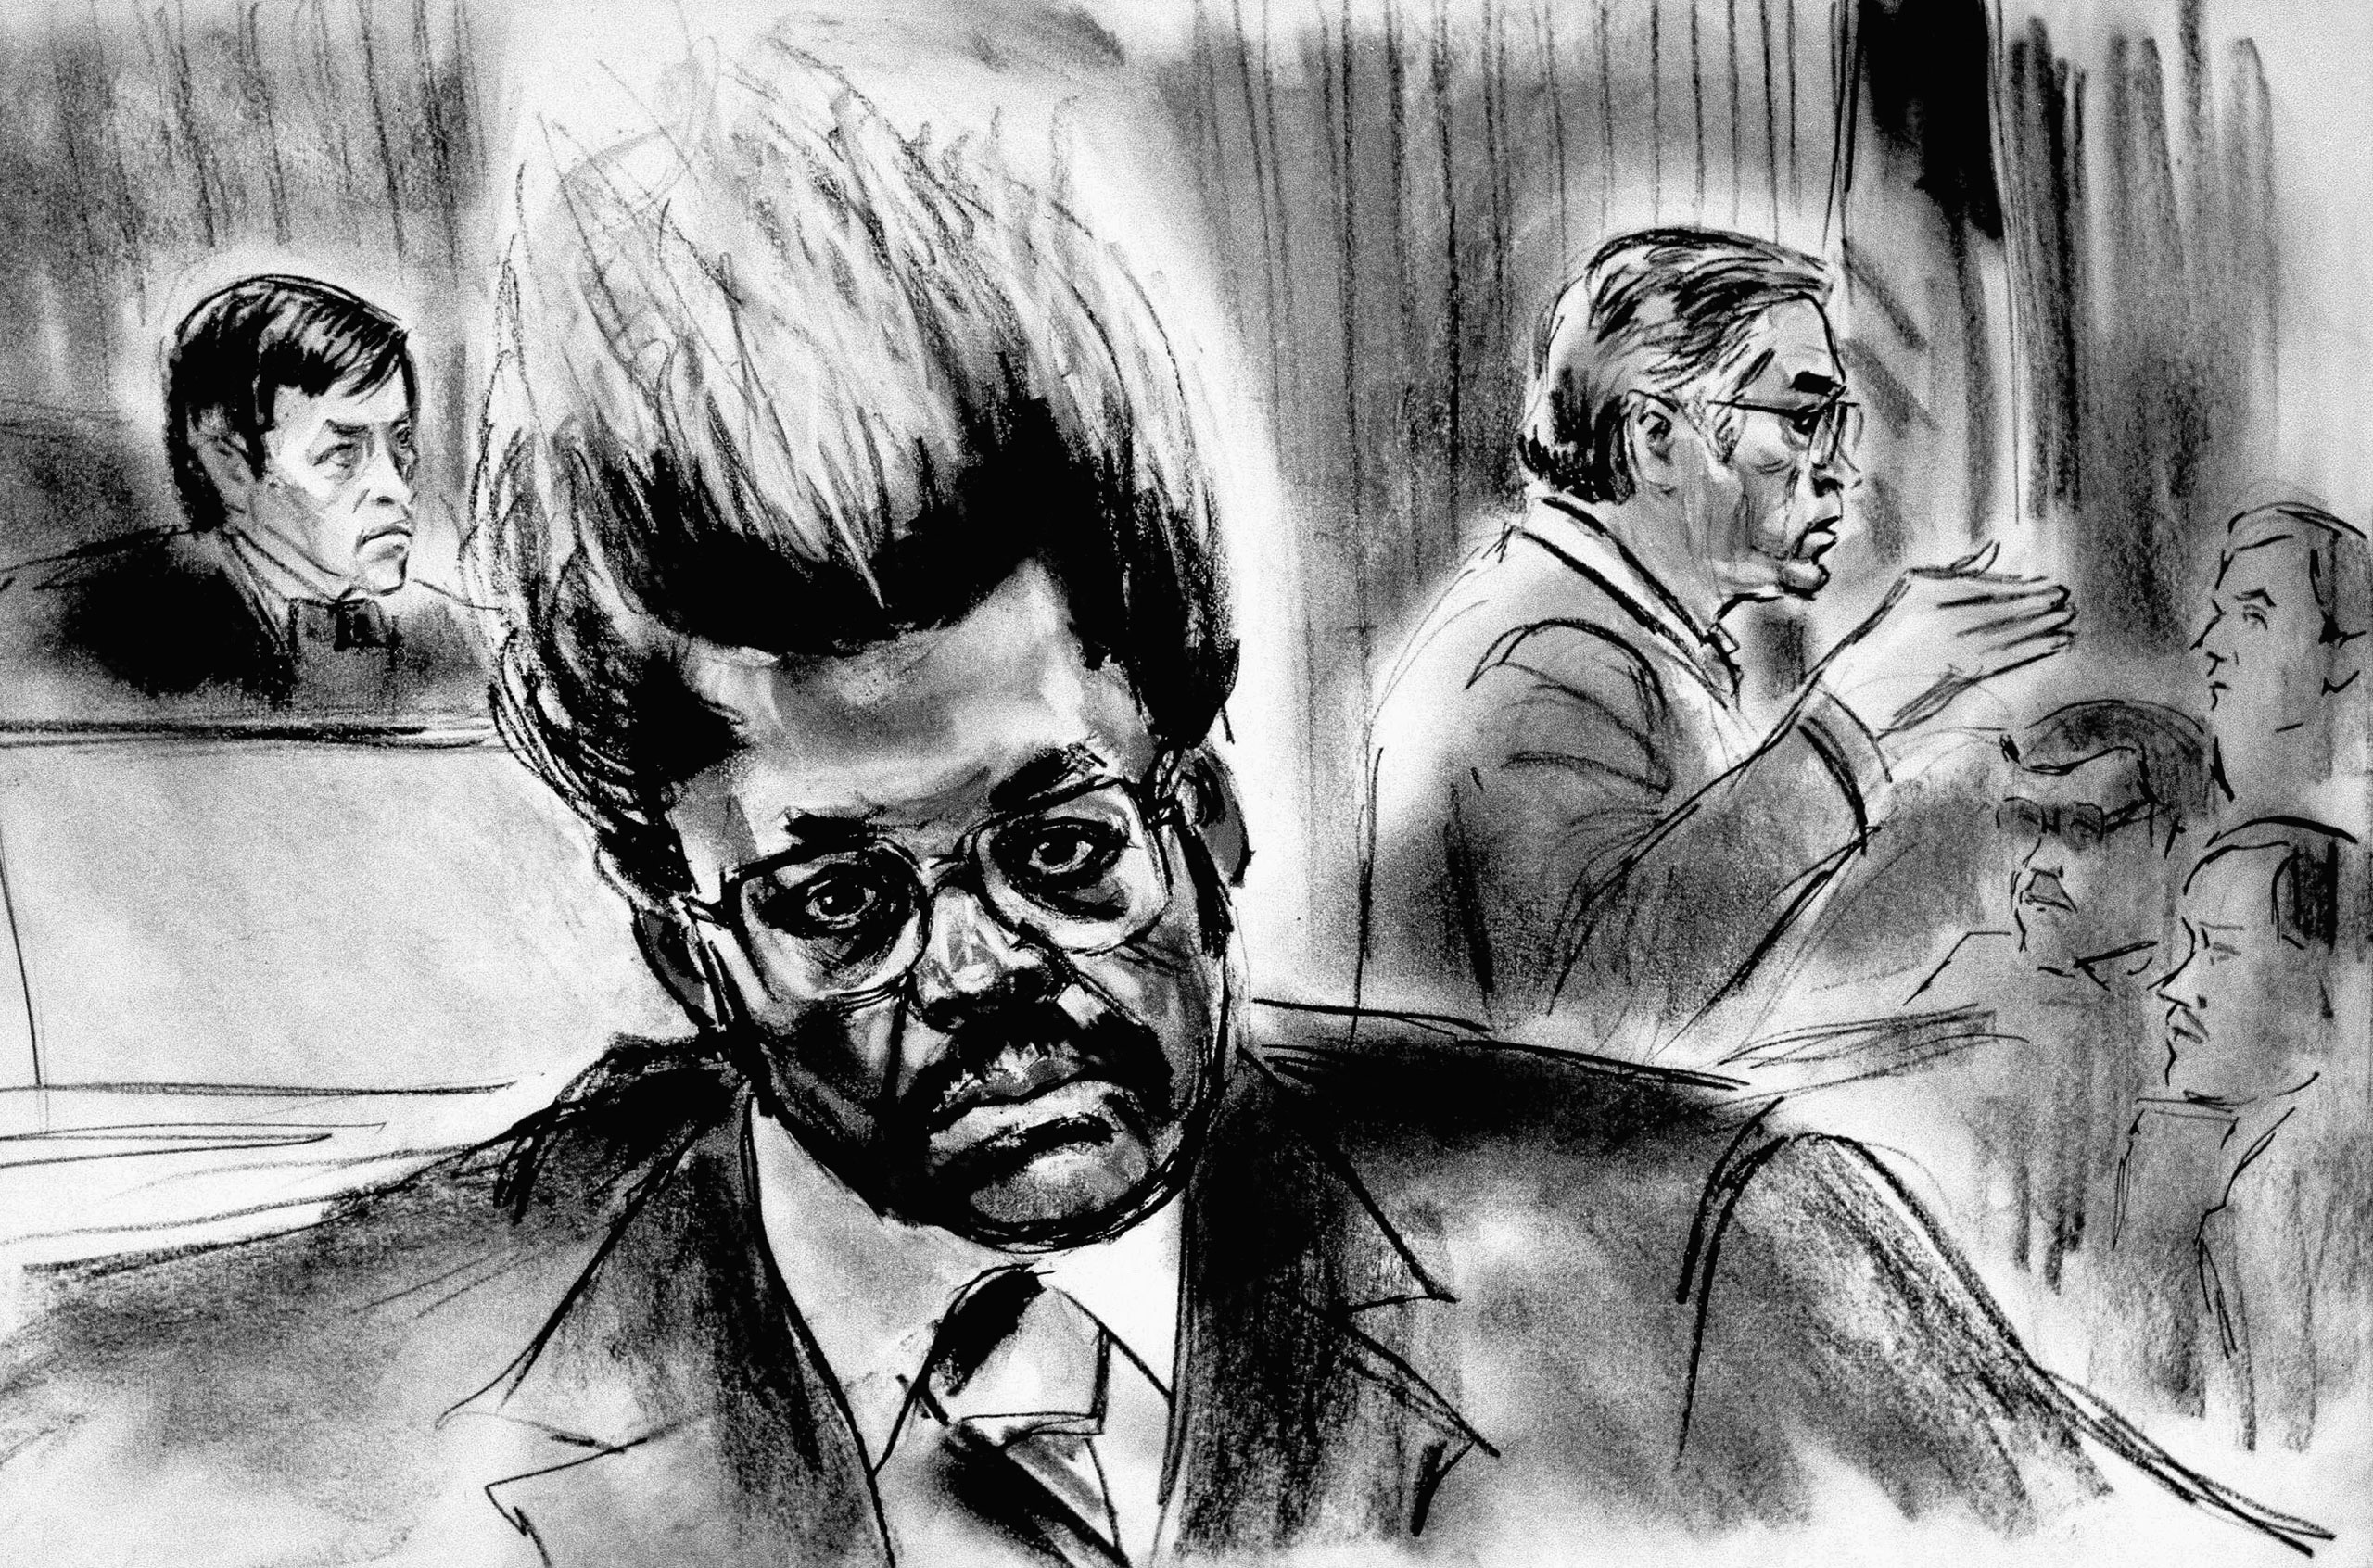 Don King in court on Oct. 7, 1985 in New York for allegedly trying to evade thousands of dollars in federal income taxes. King was acquitted.